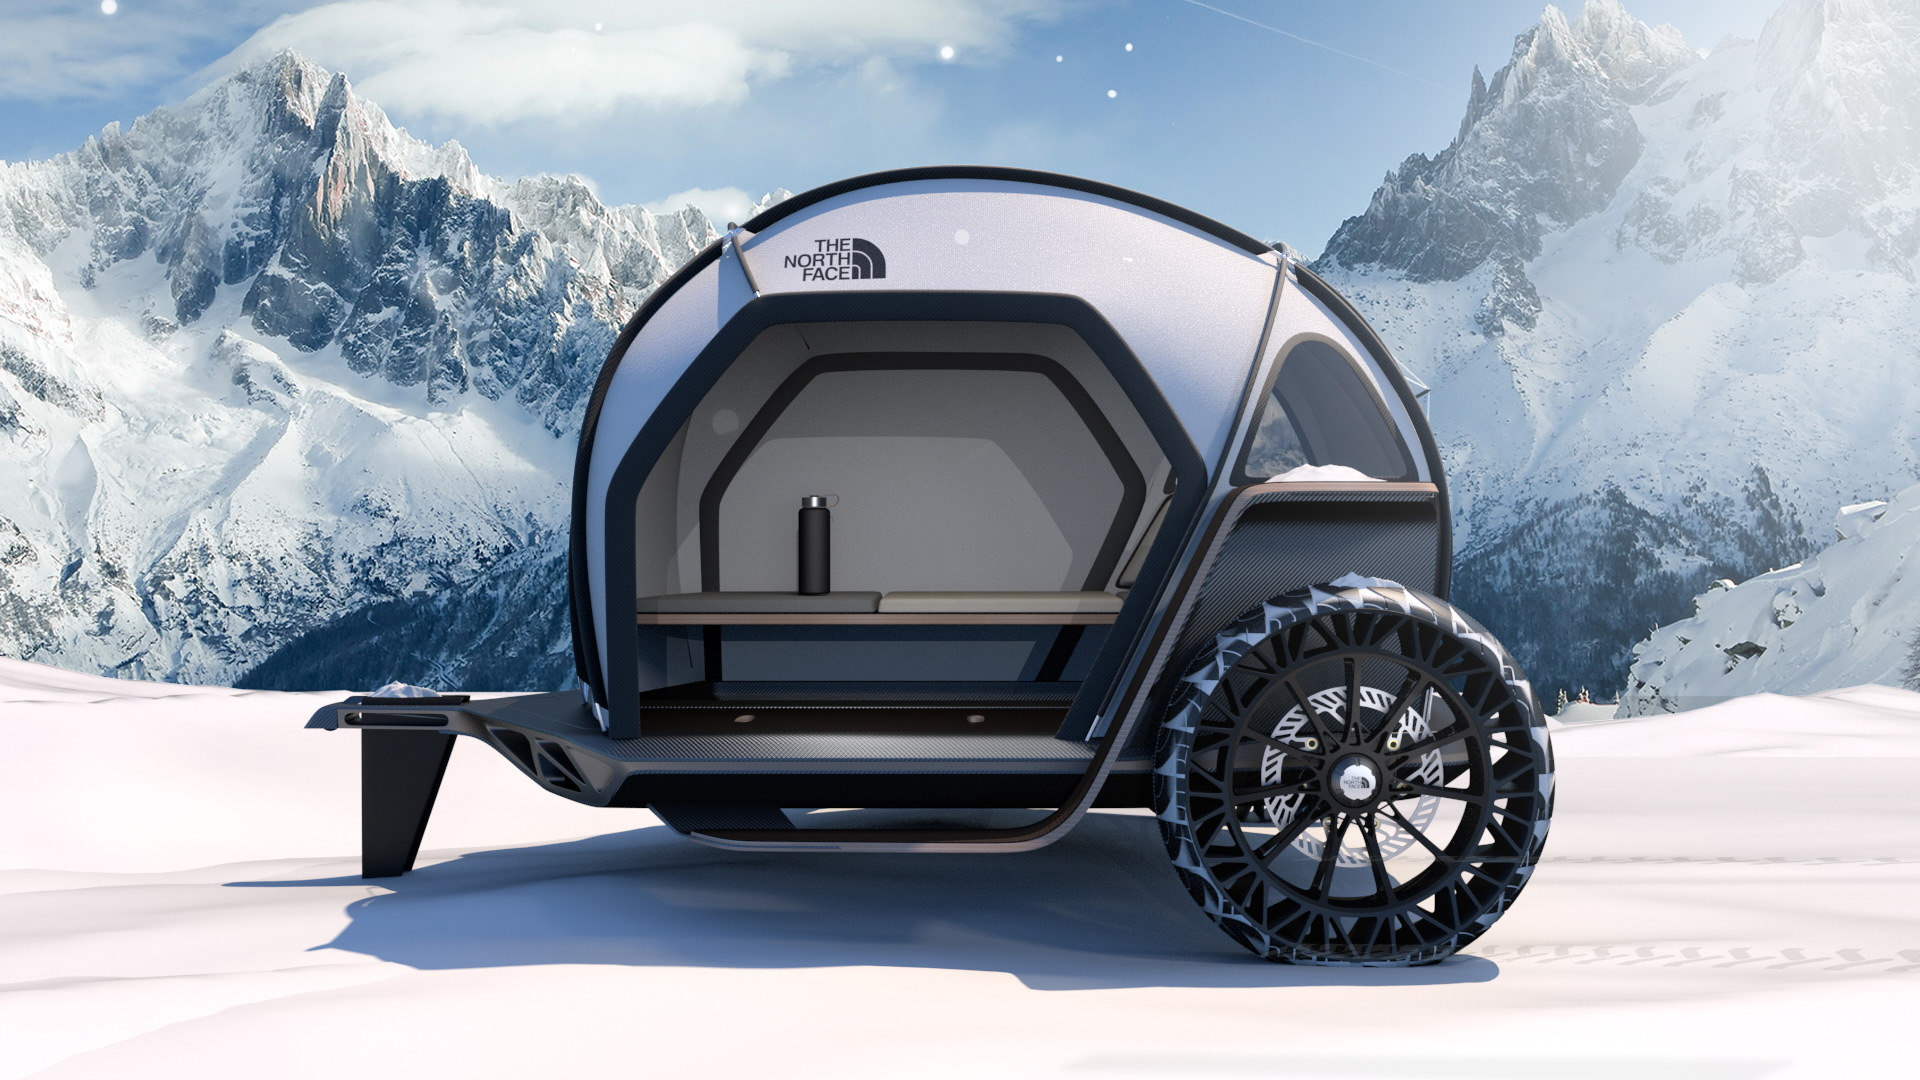 BMW and The North Face Futurelight Camper concept